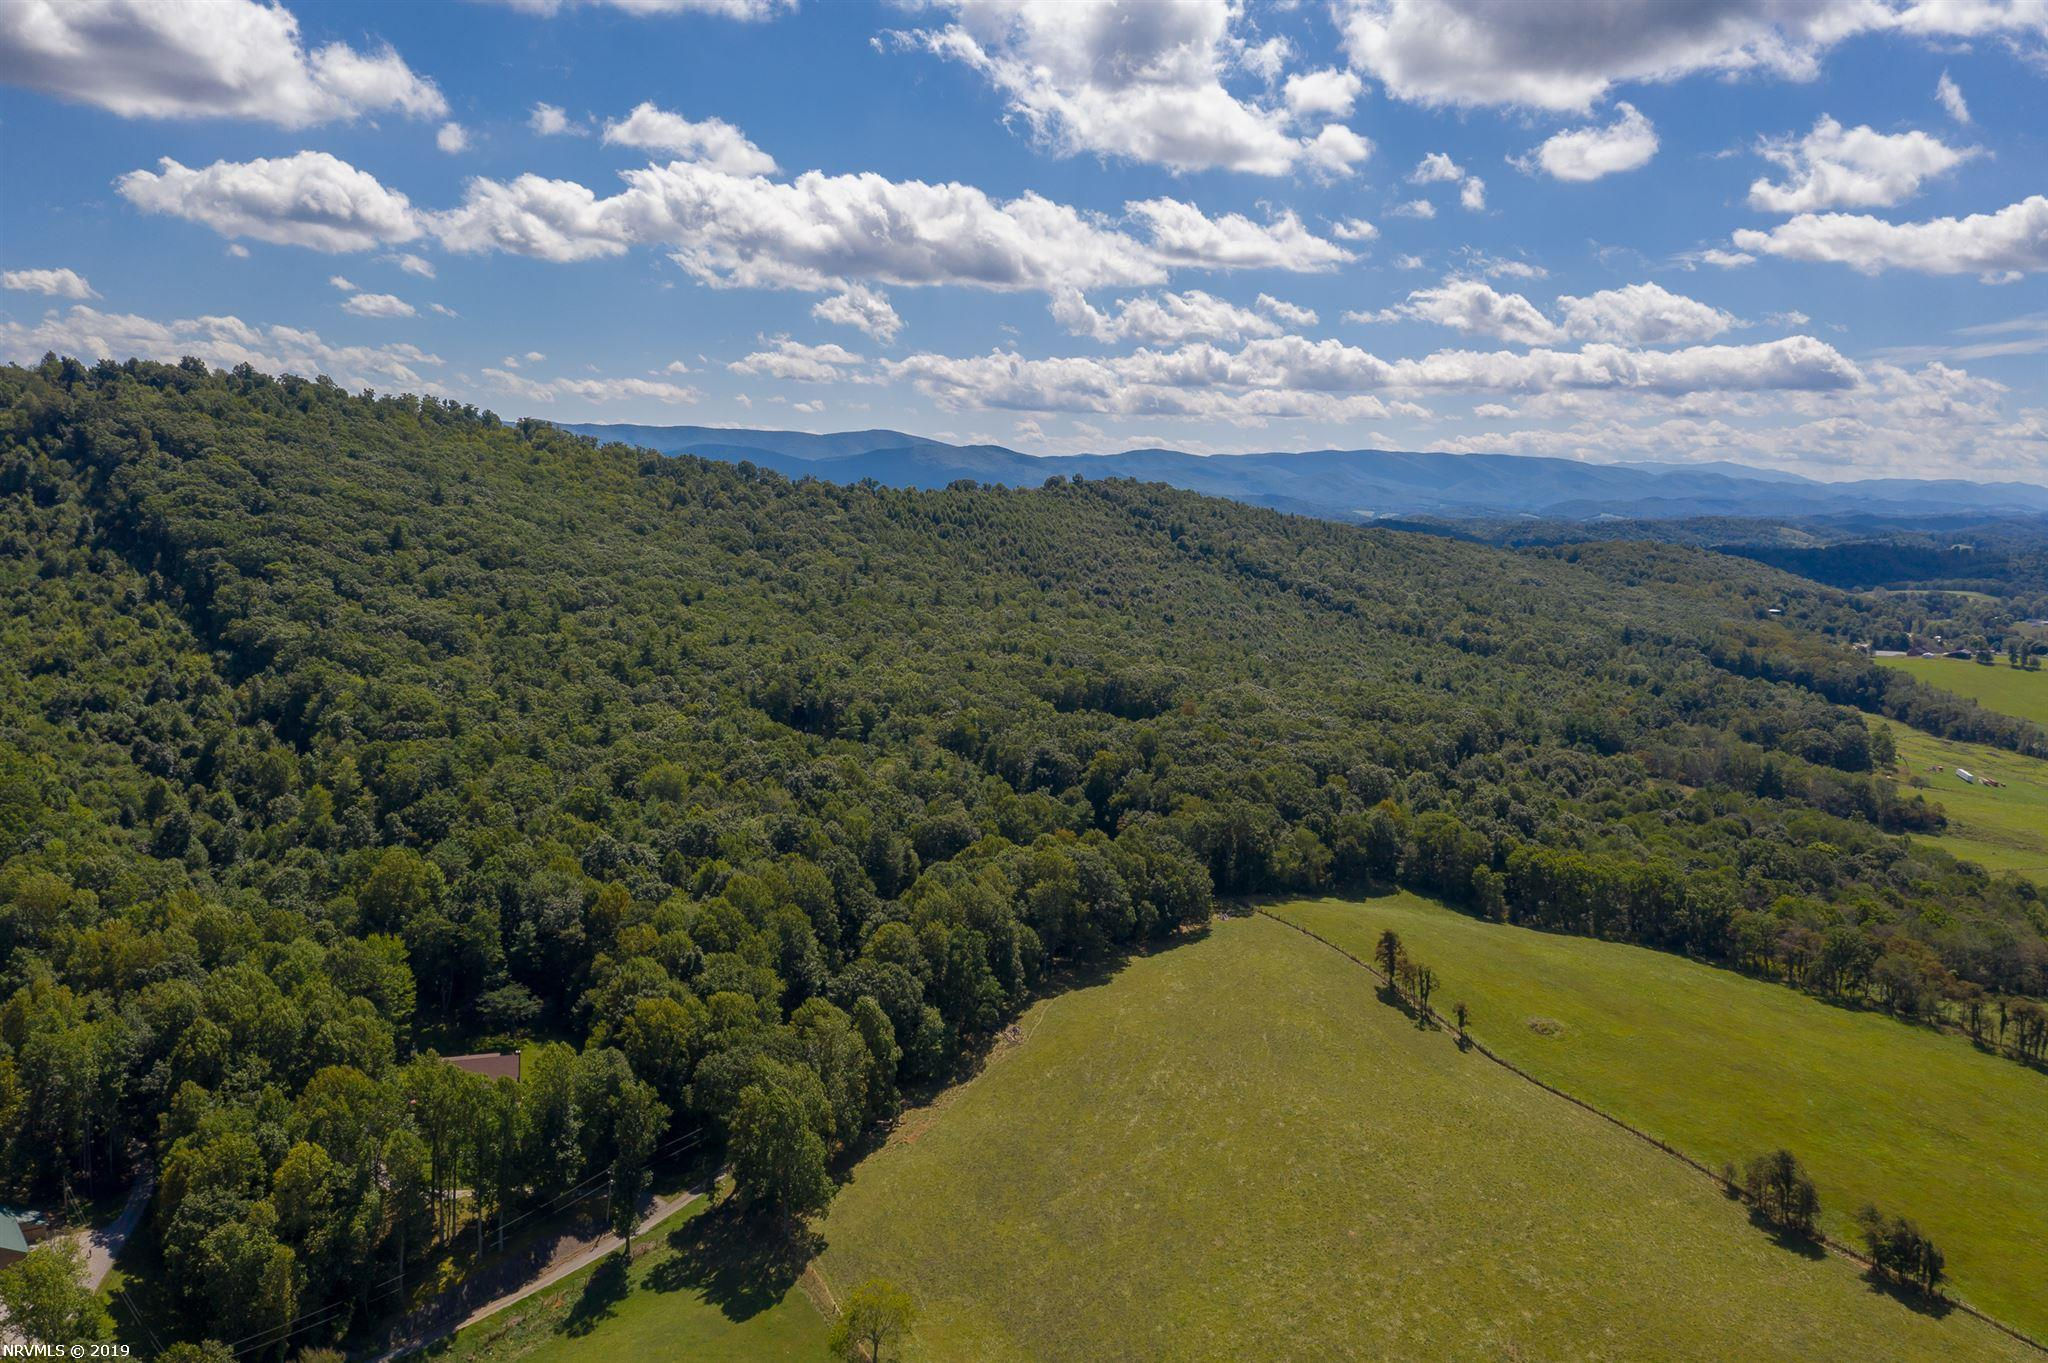 This beautiful lot is a blank canvas! Ideal for building the home of your dreams, this wooded land is secluded yet close to town. It will feel private without sacrificing amenities and getting involved in local events and activities. With easy access route 21 and both interstates, you are just a short drive away from Wytheville, Pulaski, Marion, and more. Schedule a showing today!